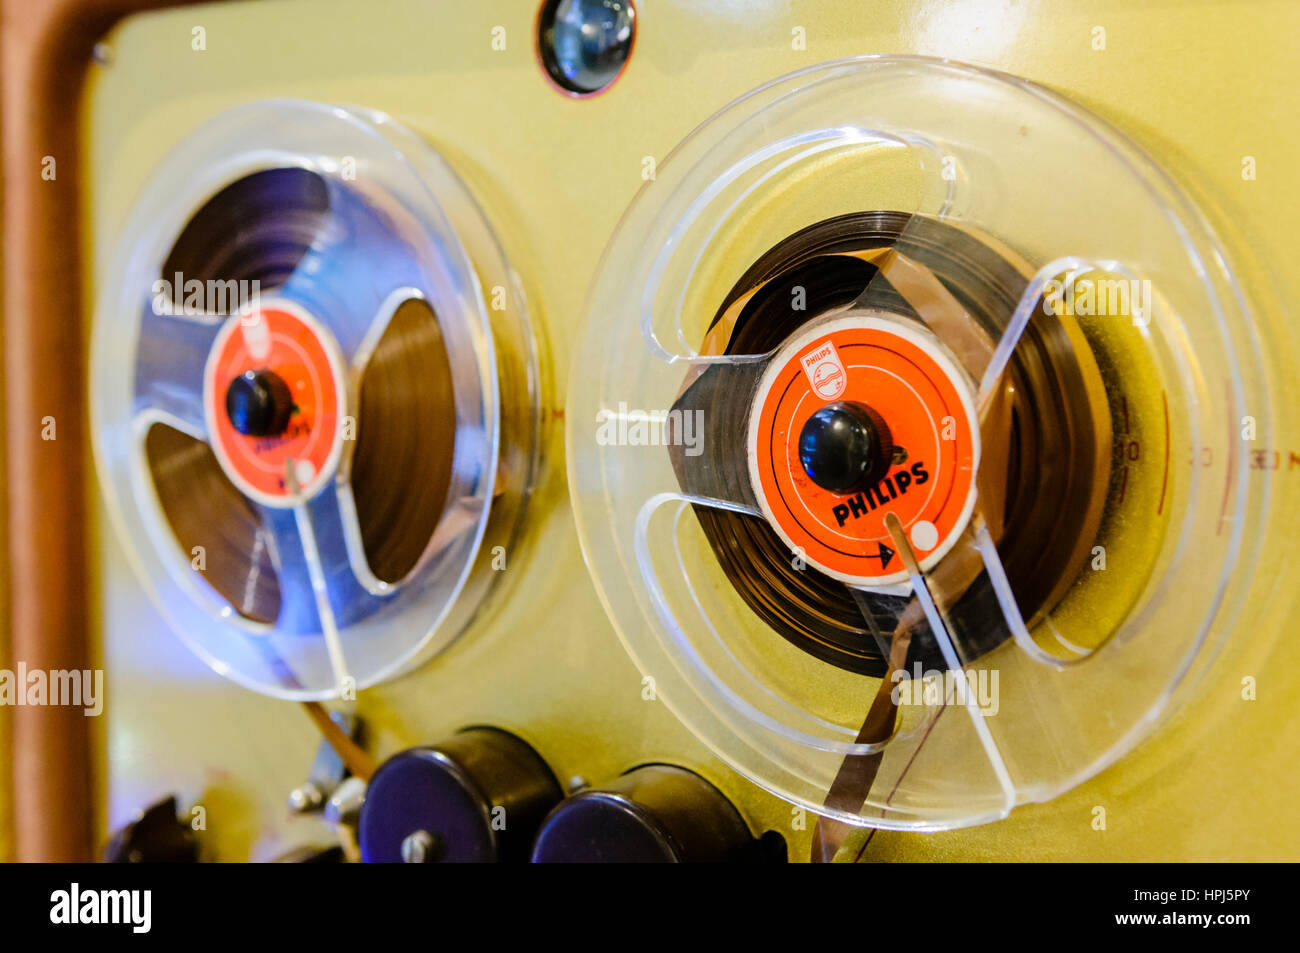 Old fashioned Philips Reel-to-Reel tape player. - Stock Image